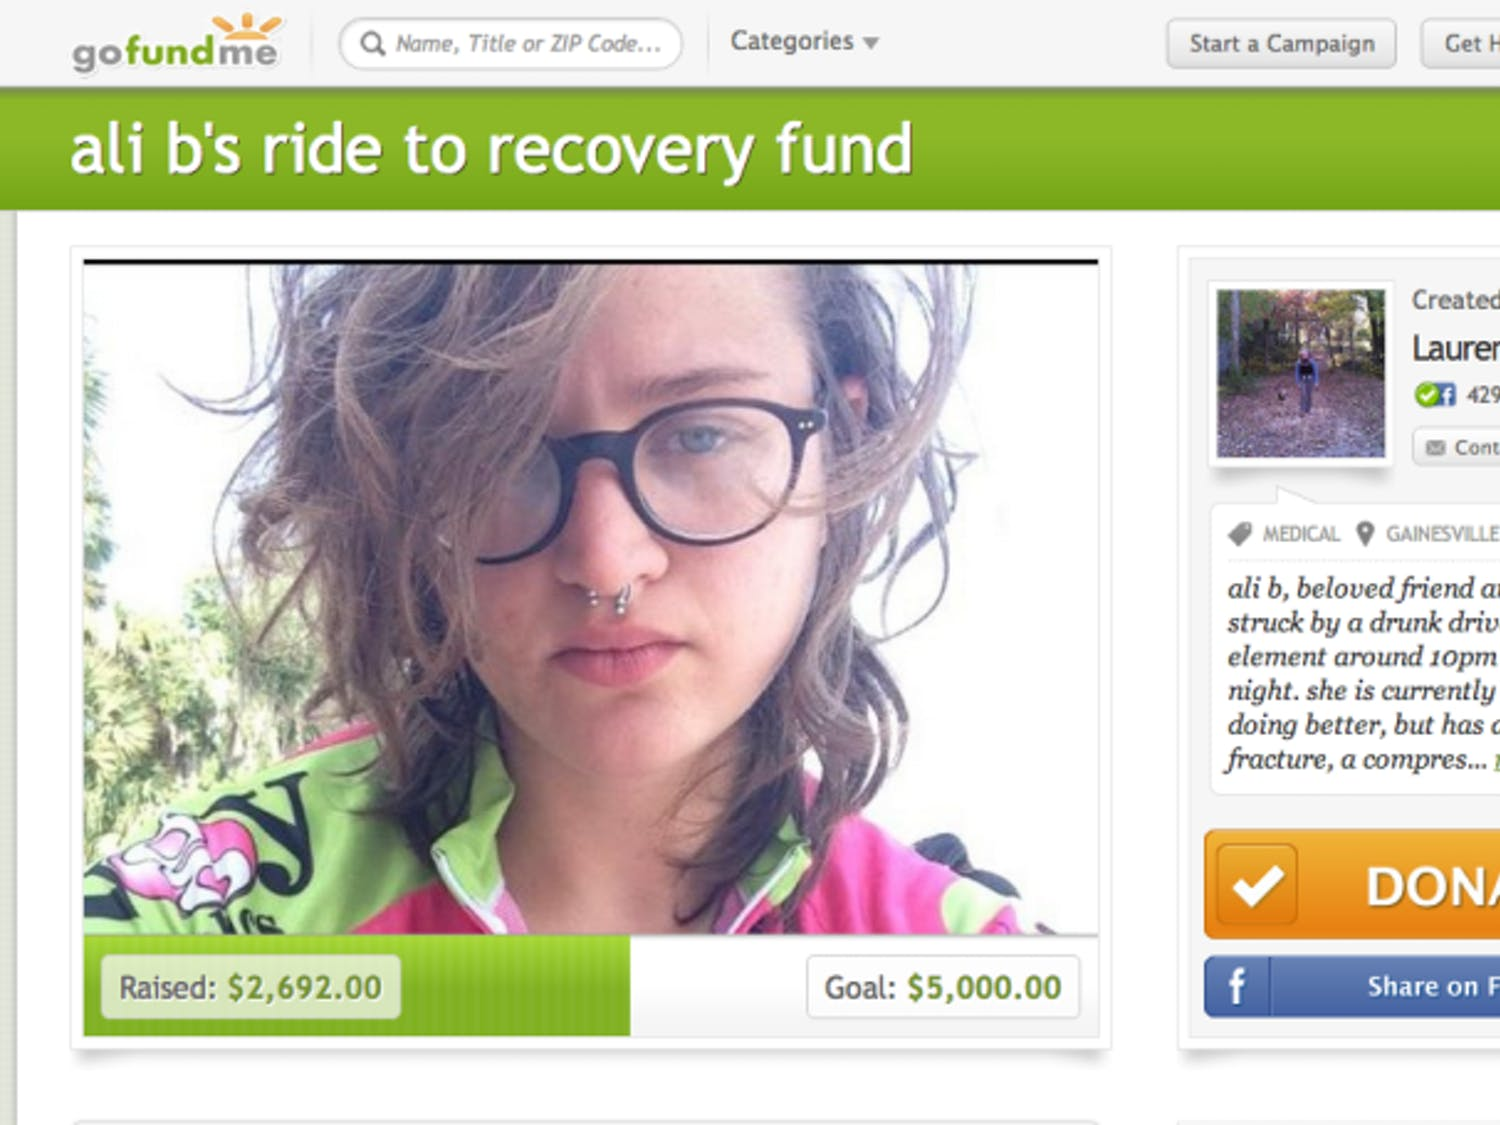 Ali Brody's friend started a GoFundMe page to help raise money for medical and living expenses during her recovery. She was hit by a drunken driver Saturday night and was released from the hospital Monday.